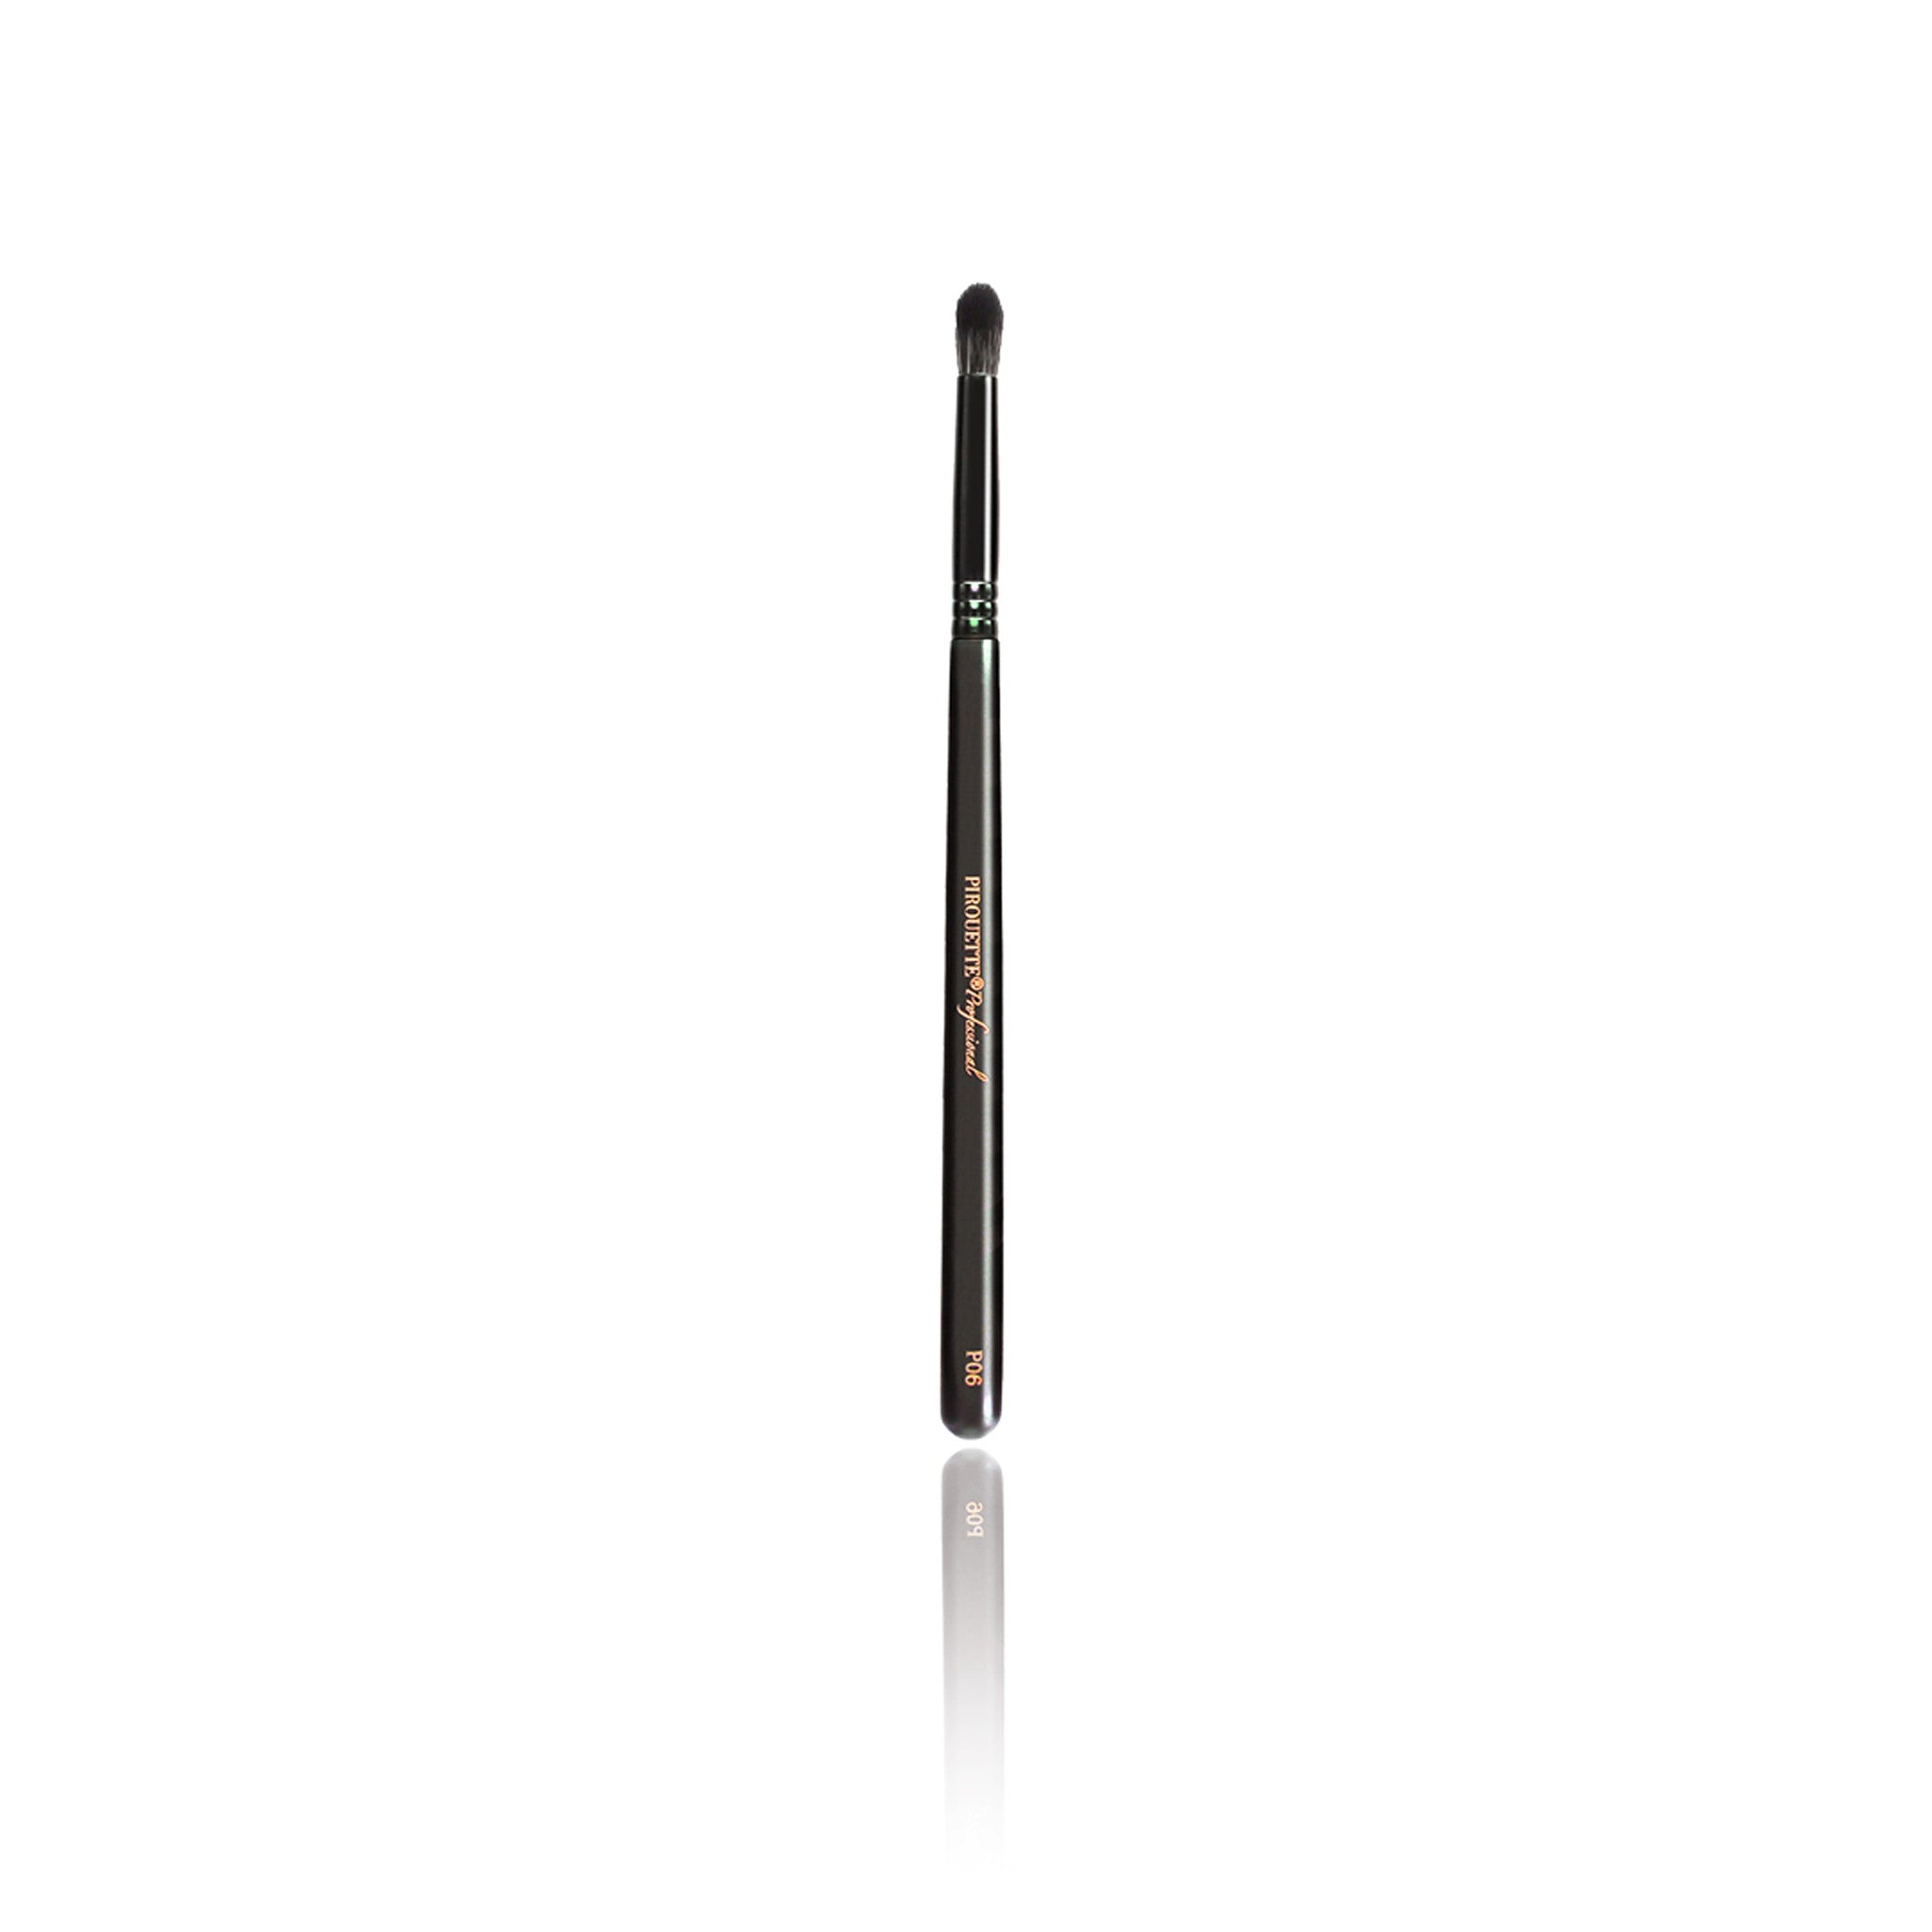 Artiste Collection: Blending Brush P06